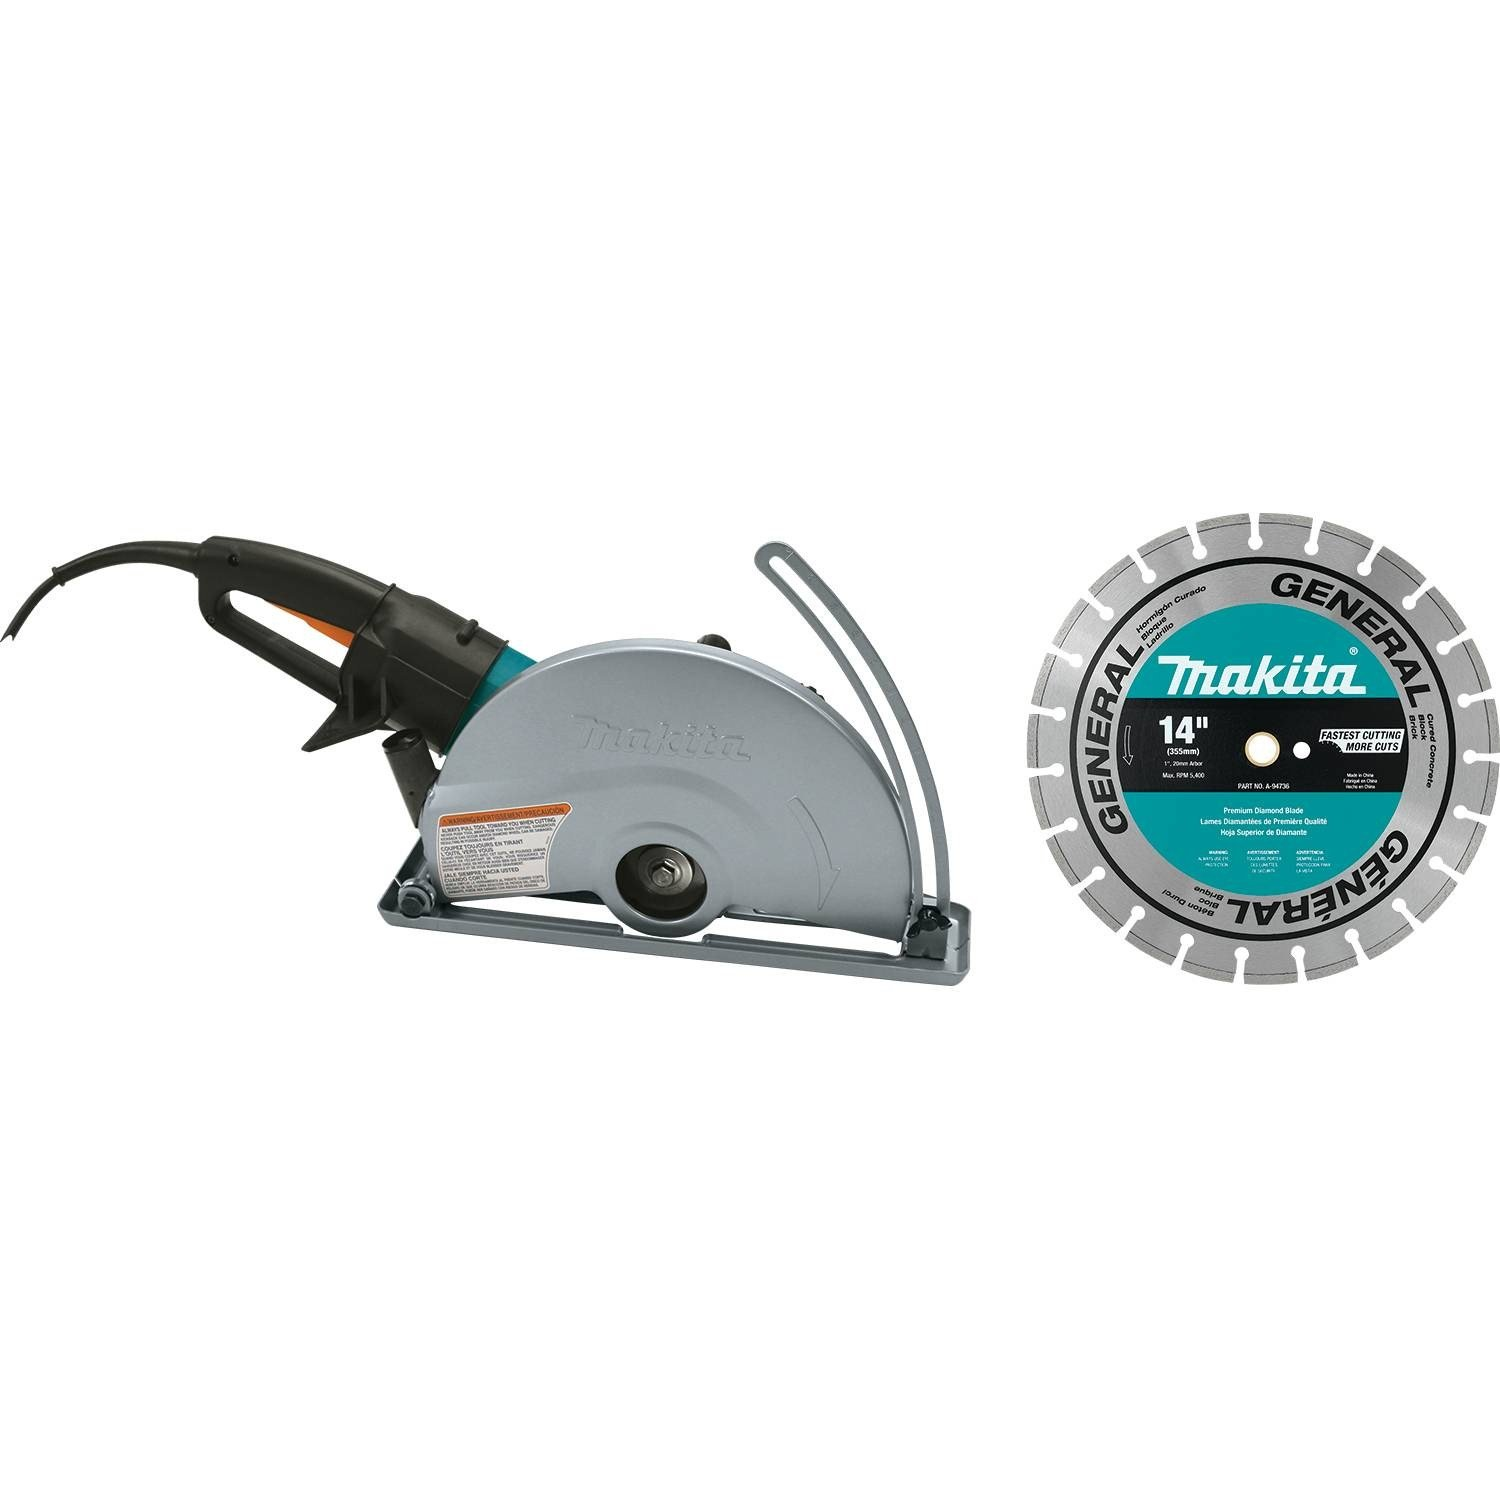 Makita 4114X 14'' Electric Angle Cutter, with 14'' Diamond Blade by Makita